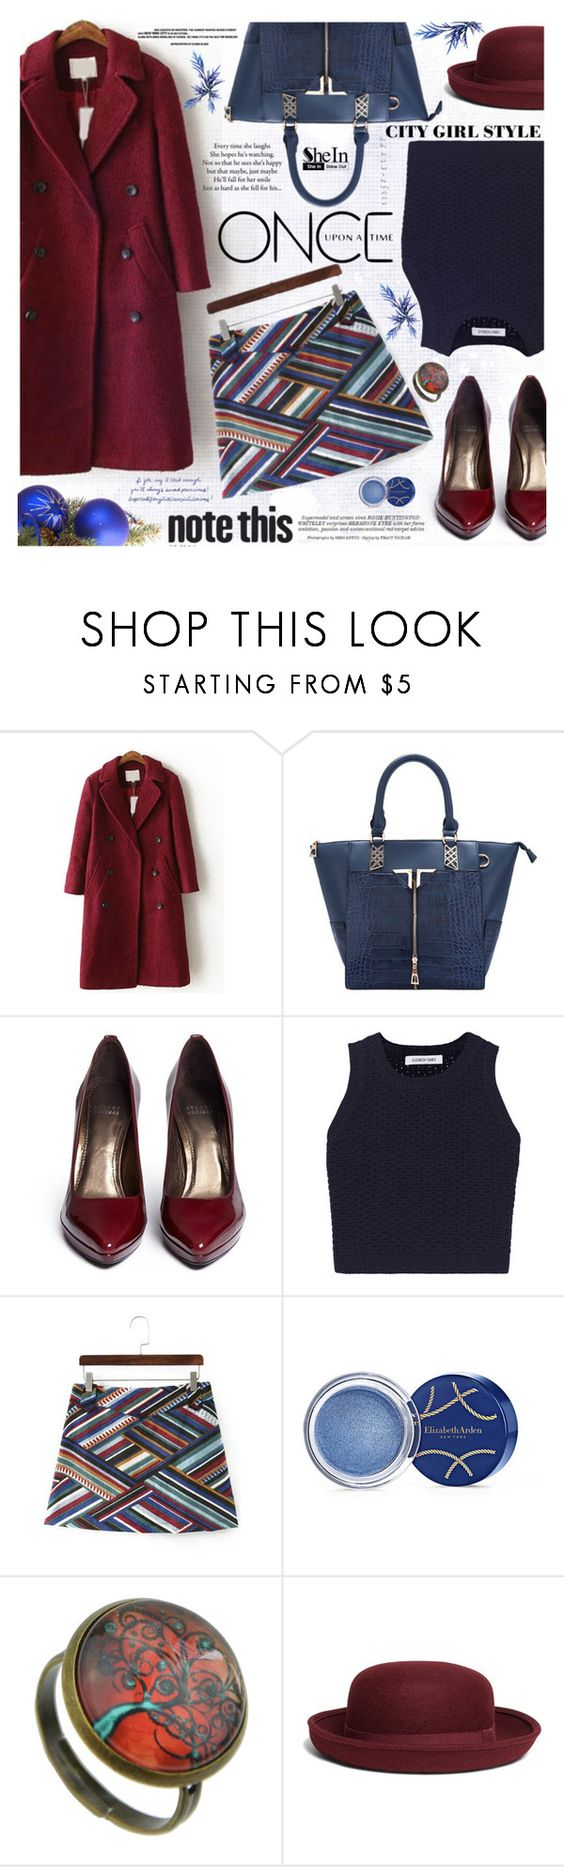 """""""City girl style"""" by katjuncica ❤ liked on Polyvore featuring Stuart Weitzman, Elizabeth and James, Elizabeth Arden, Brooks Brothers, Once Upon a Time and Whiteley"""